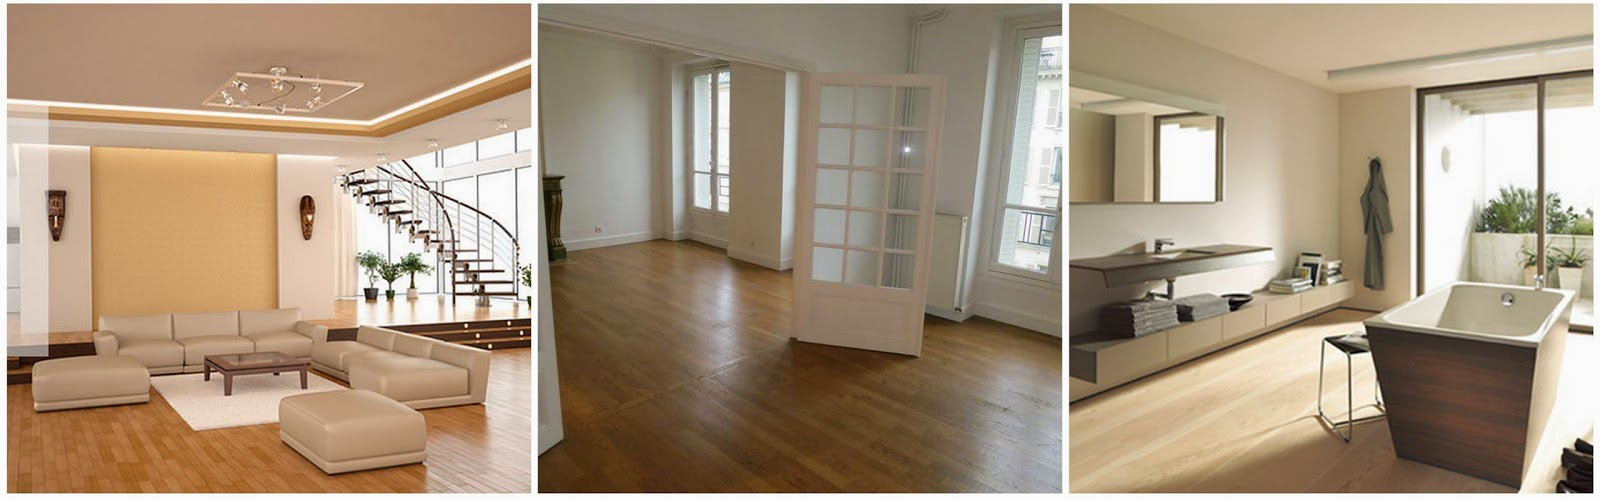 Travaux appartement 92290 chatenay malabry